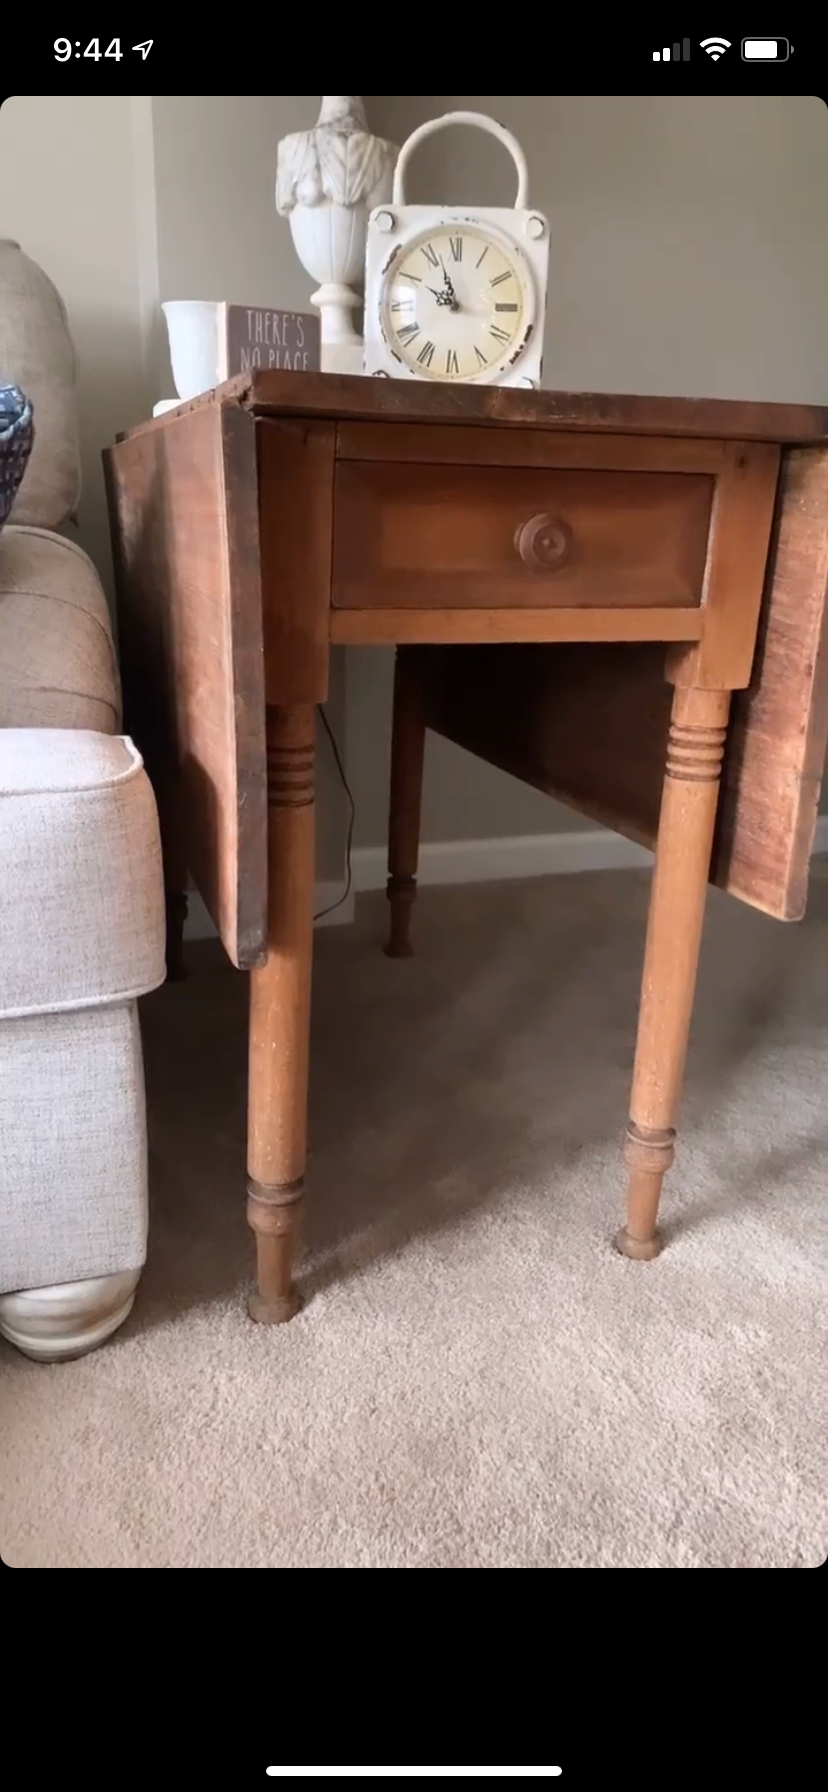 Before state of antique side table